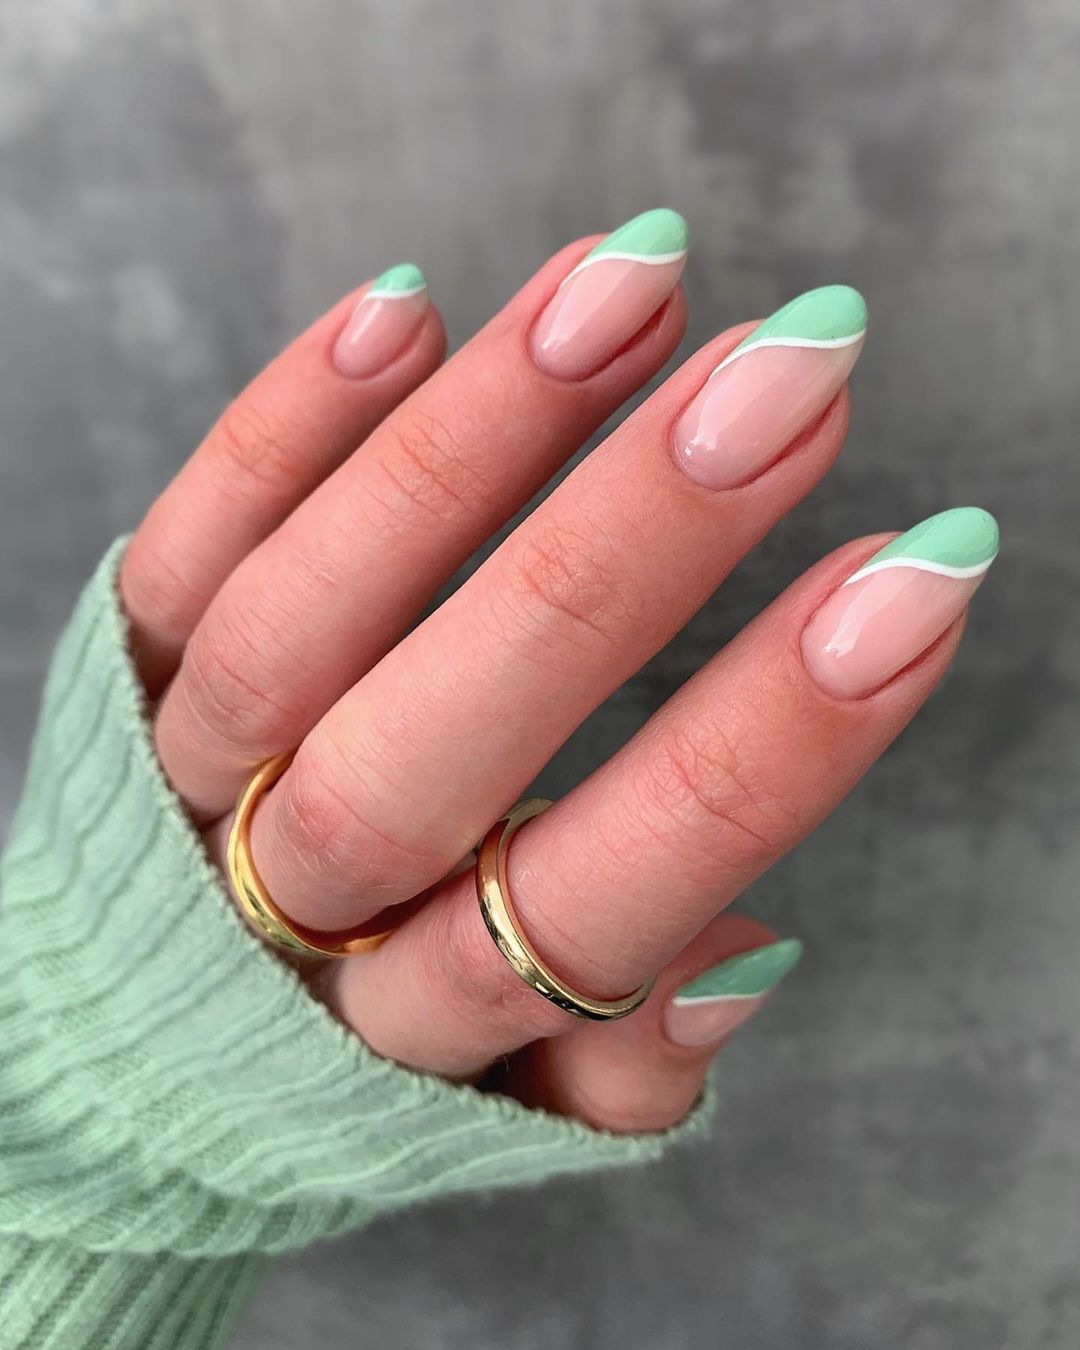 Top 10 Most Luxurious Nail Designs for 2021   Pouted.com